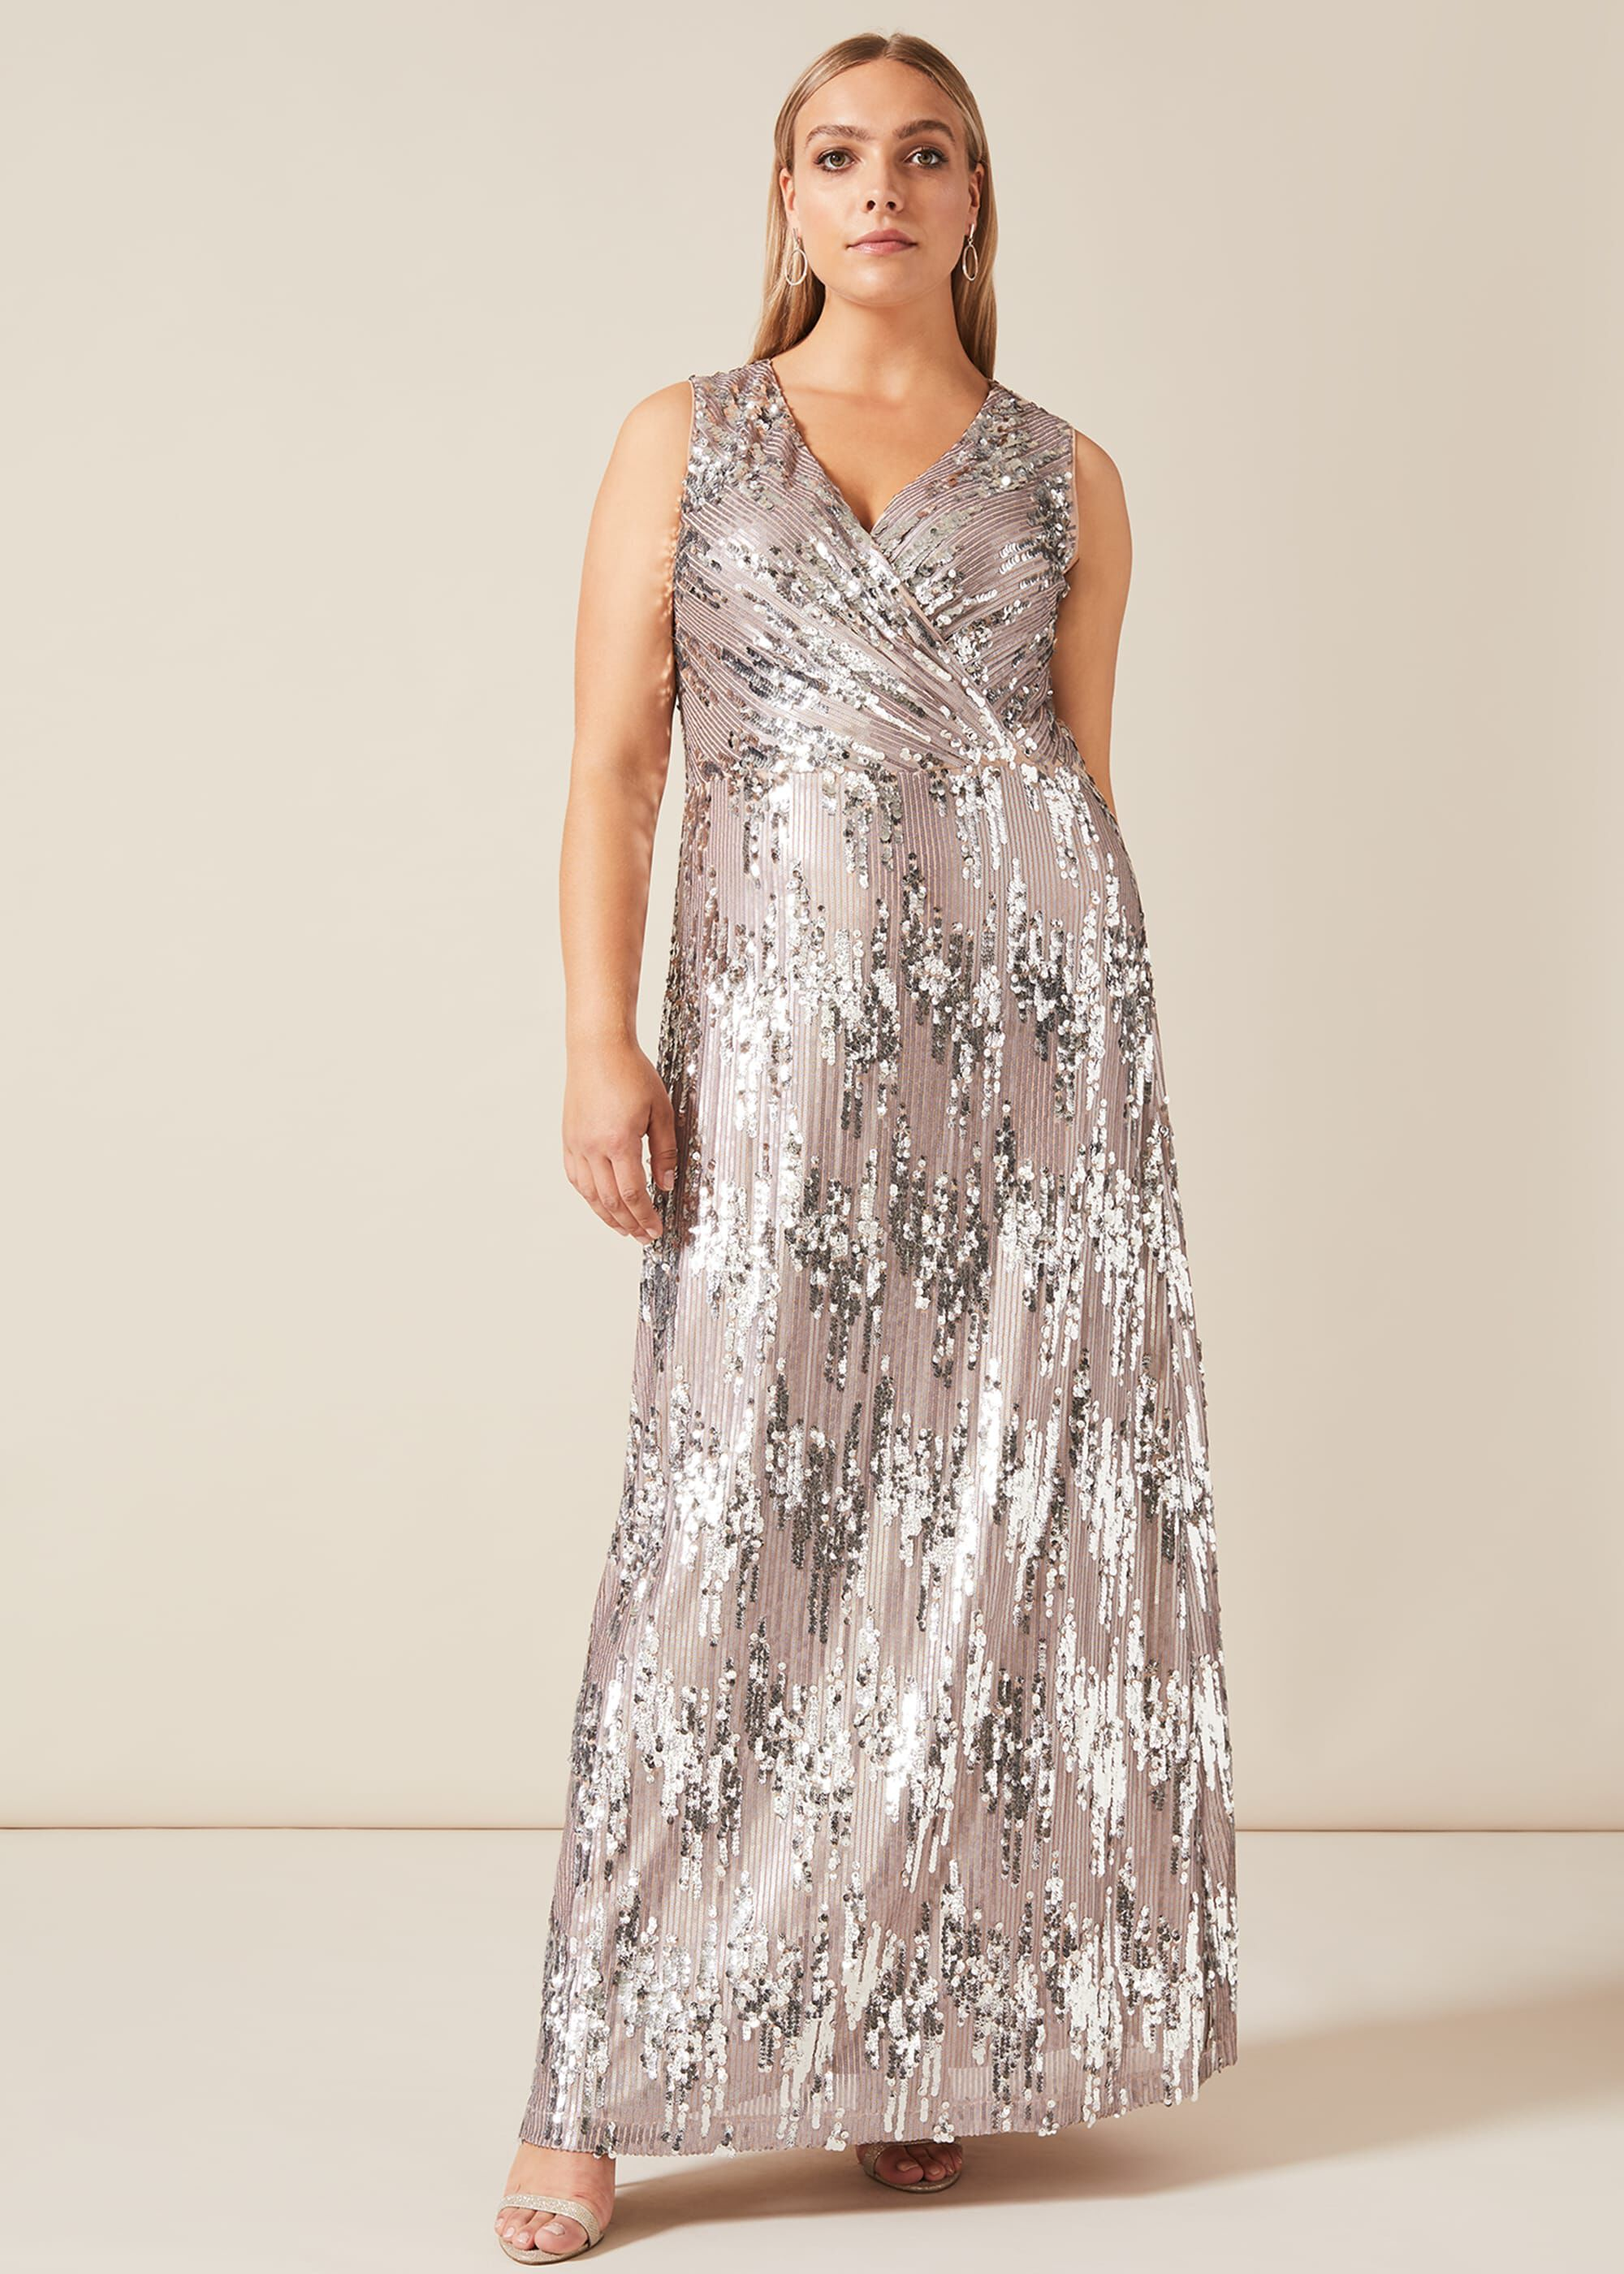 Studio 8 Daphne Sequin Maxi Dress, Metallic, Maxi, Occasion Dress